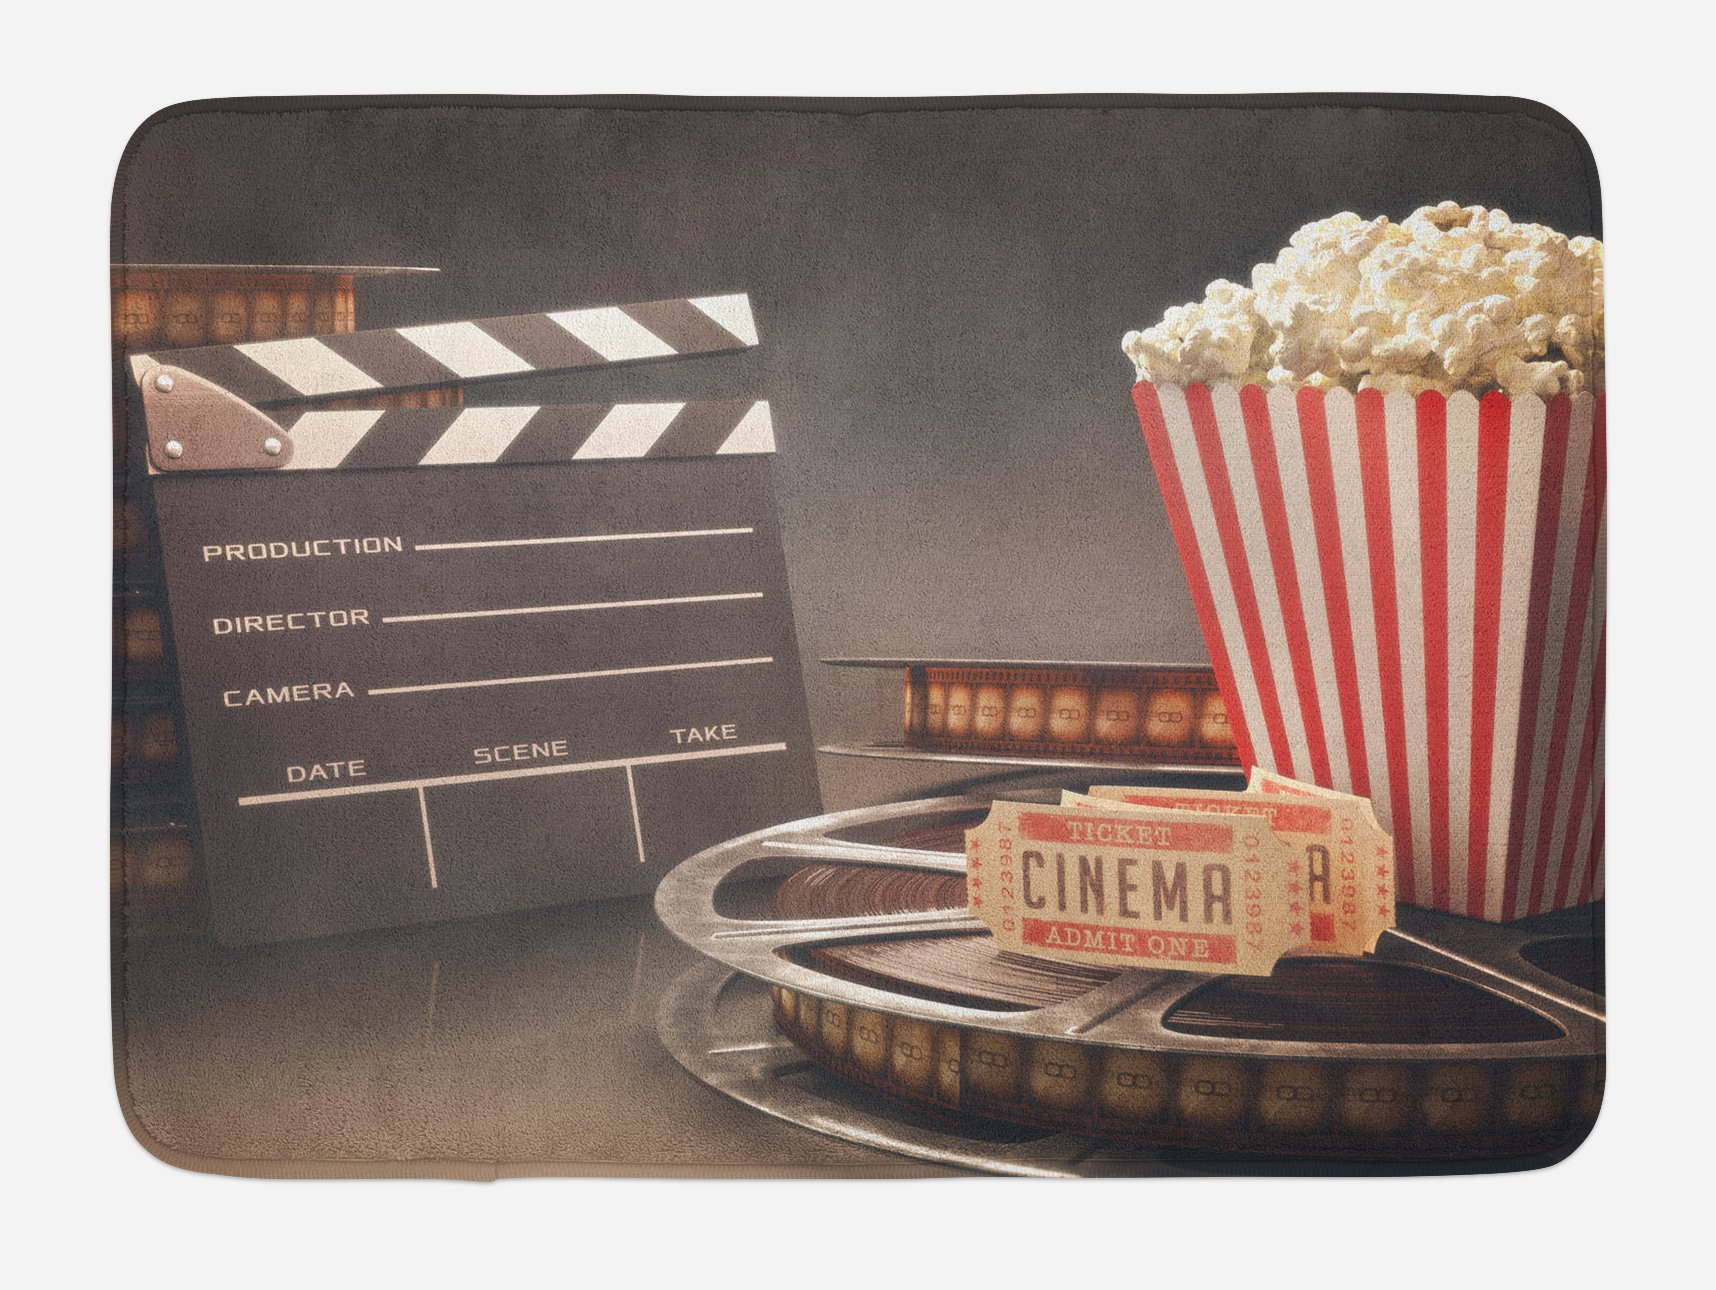 Ambesonne Movie Theater Bath Mat, Old Fashion Entertainment Objects Related to Cinema Film Reel Motion Picture, Plush Bathroom Decor Mat with Non Slip Backing, 29.5 W X 17.5 W Inches, Multicolor